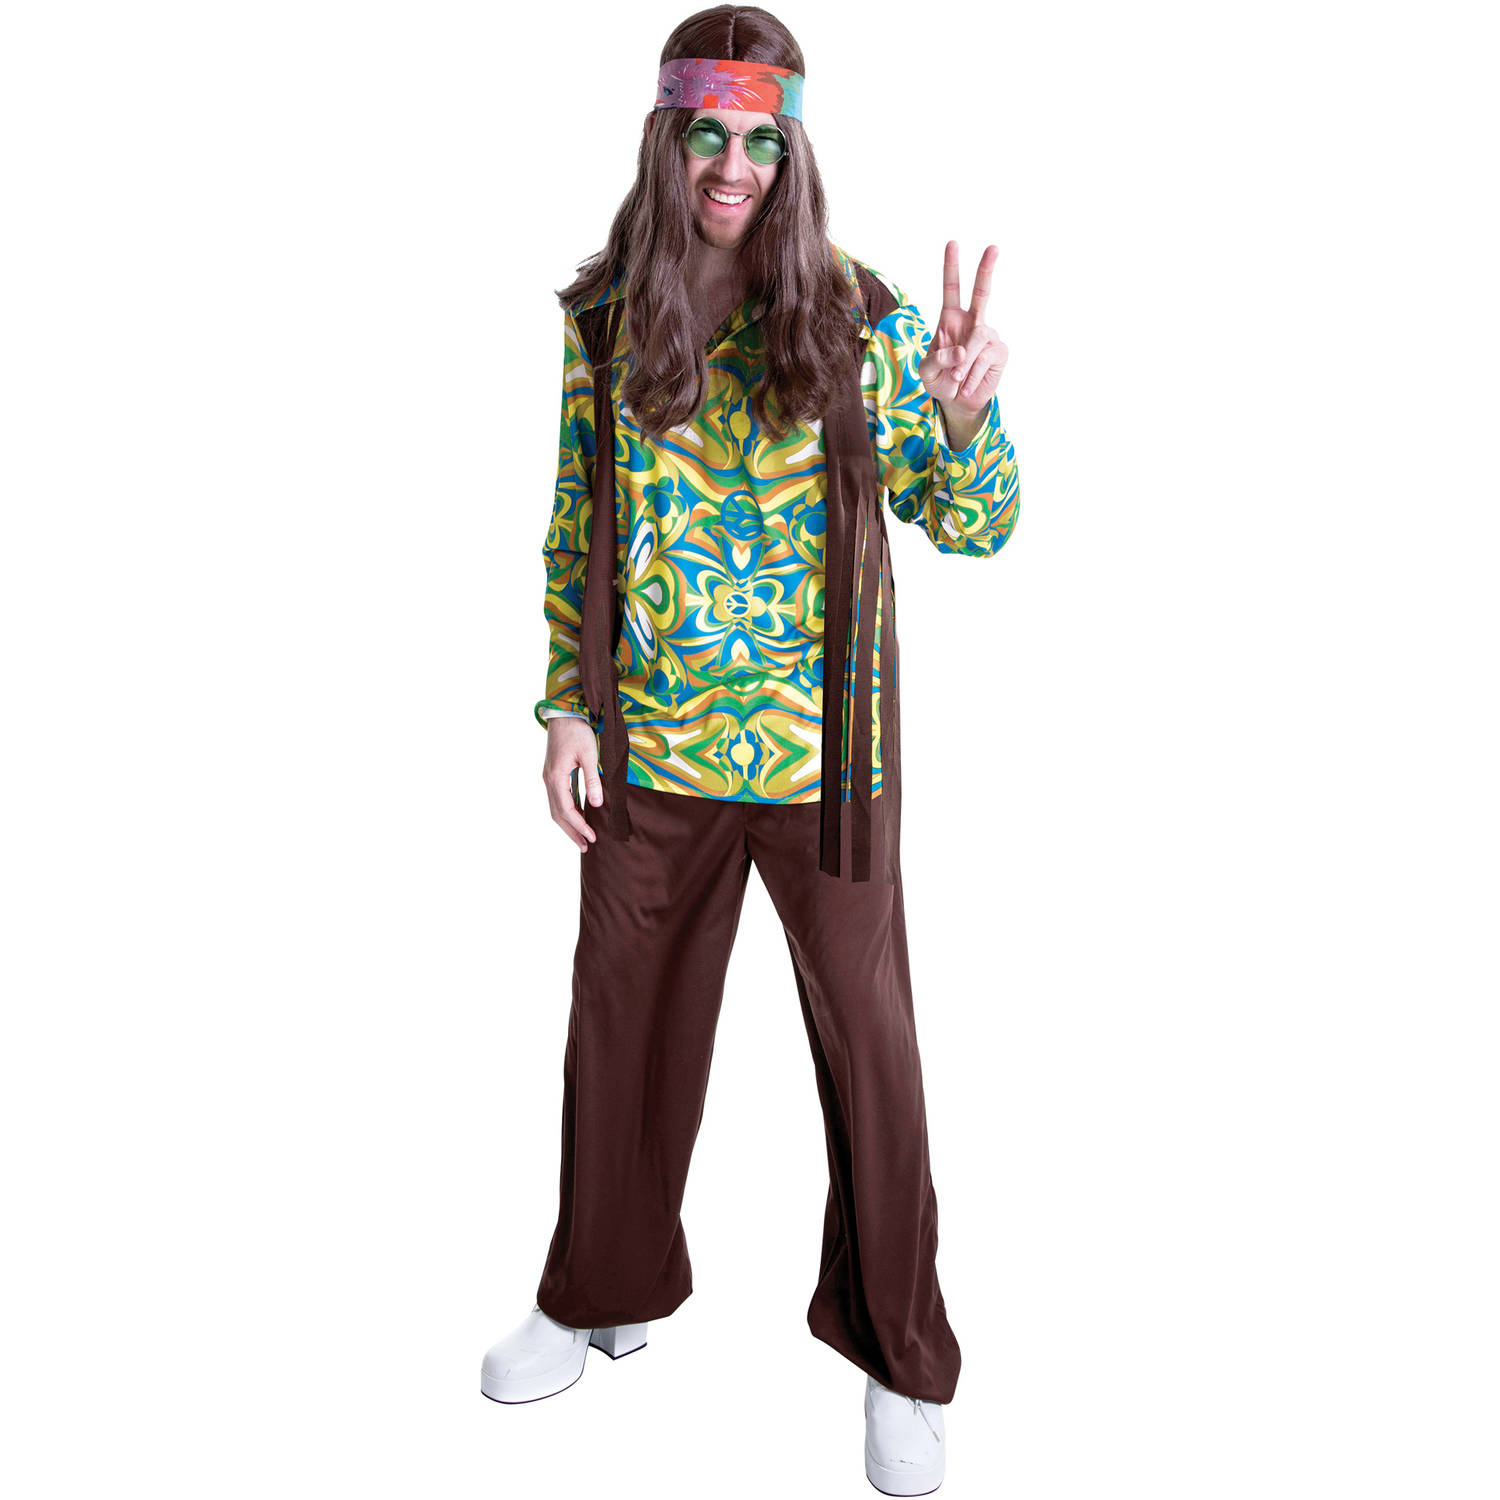 sc 1 st  Walmart & Hippie Menu0027s Adult Halloween Dress Up / Role Play Costume - Walmart.com